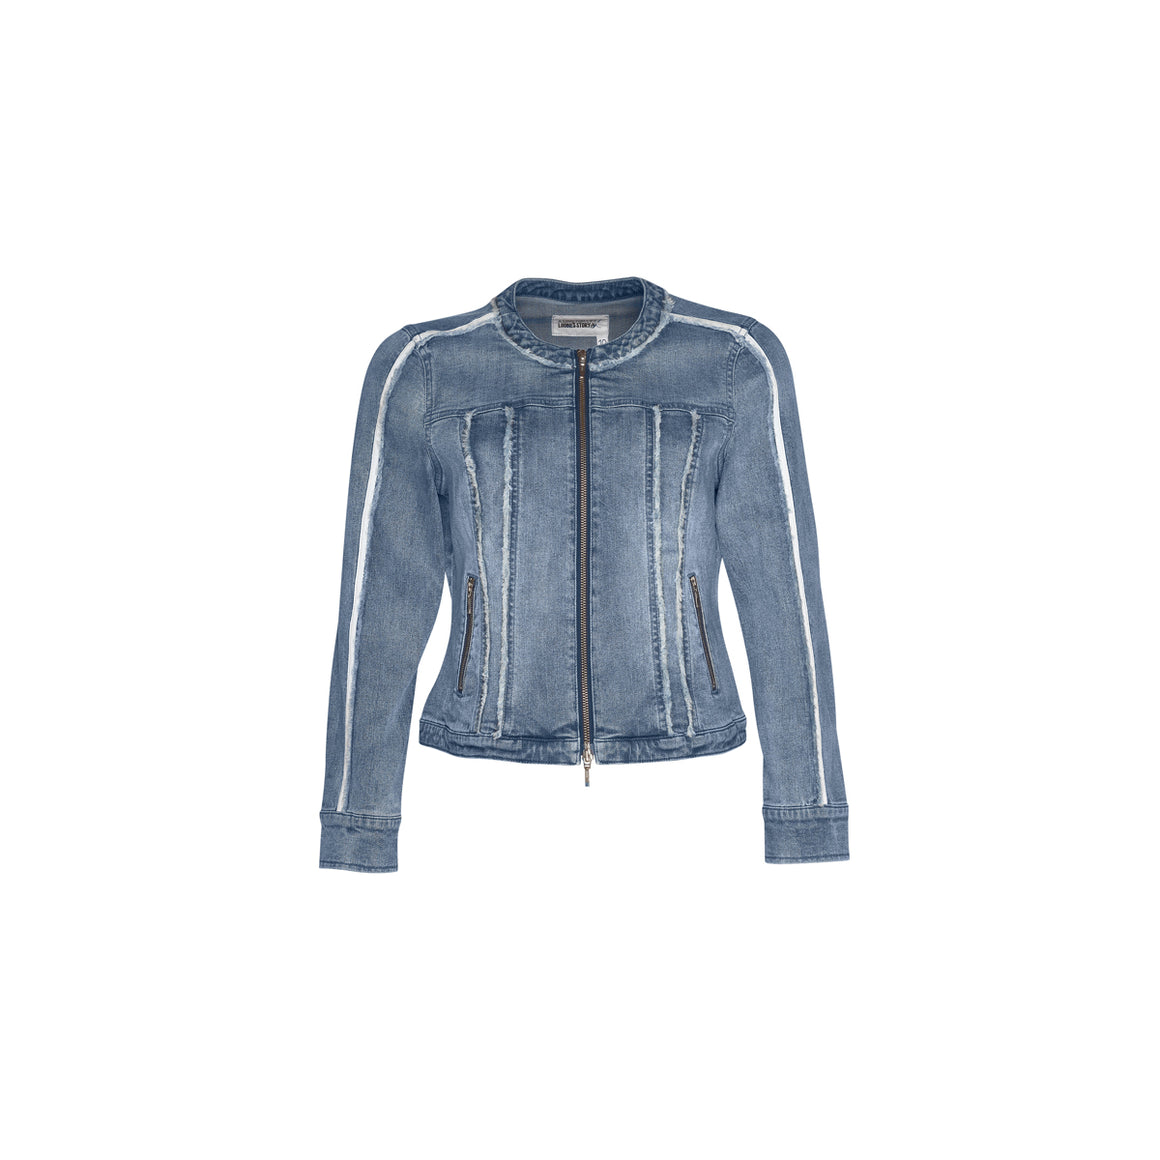 Loobies - Jacket Carmelita Light Wash